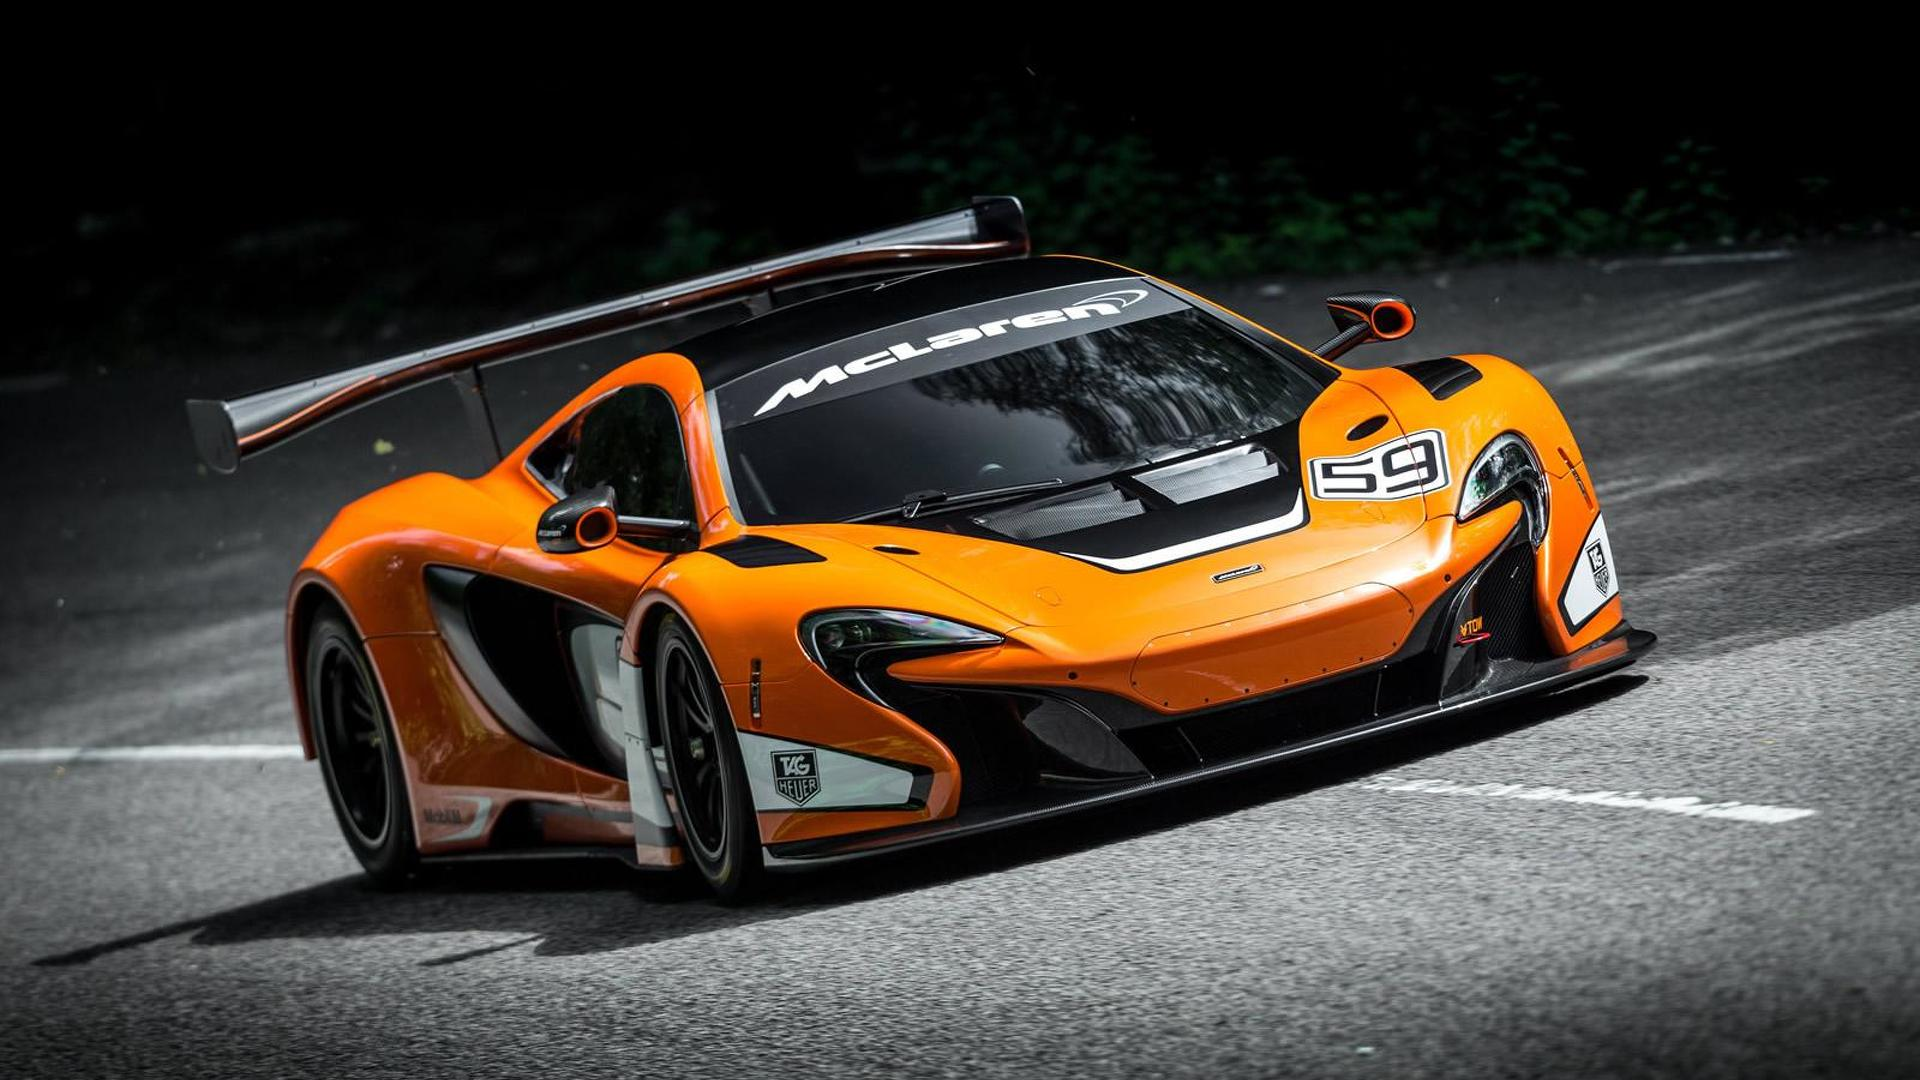 McLaren 650S GT3 goes official at Goodwood FoS